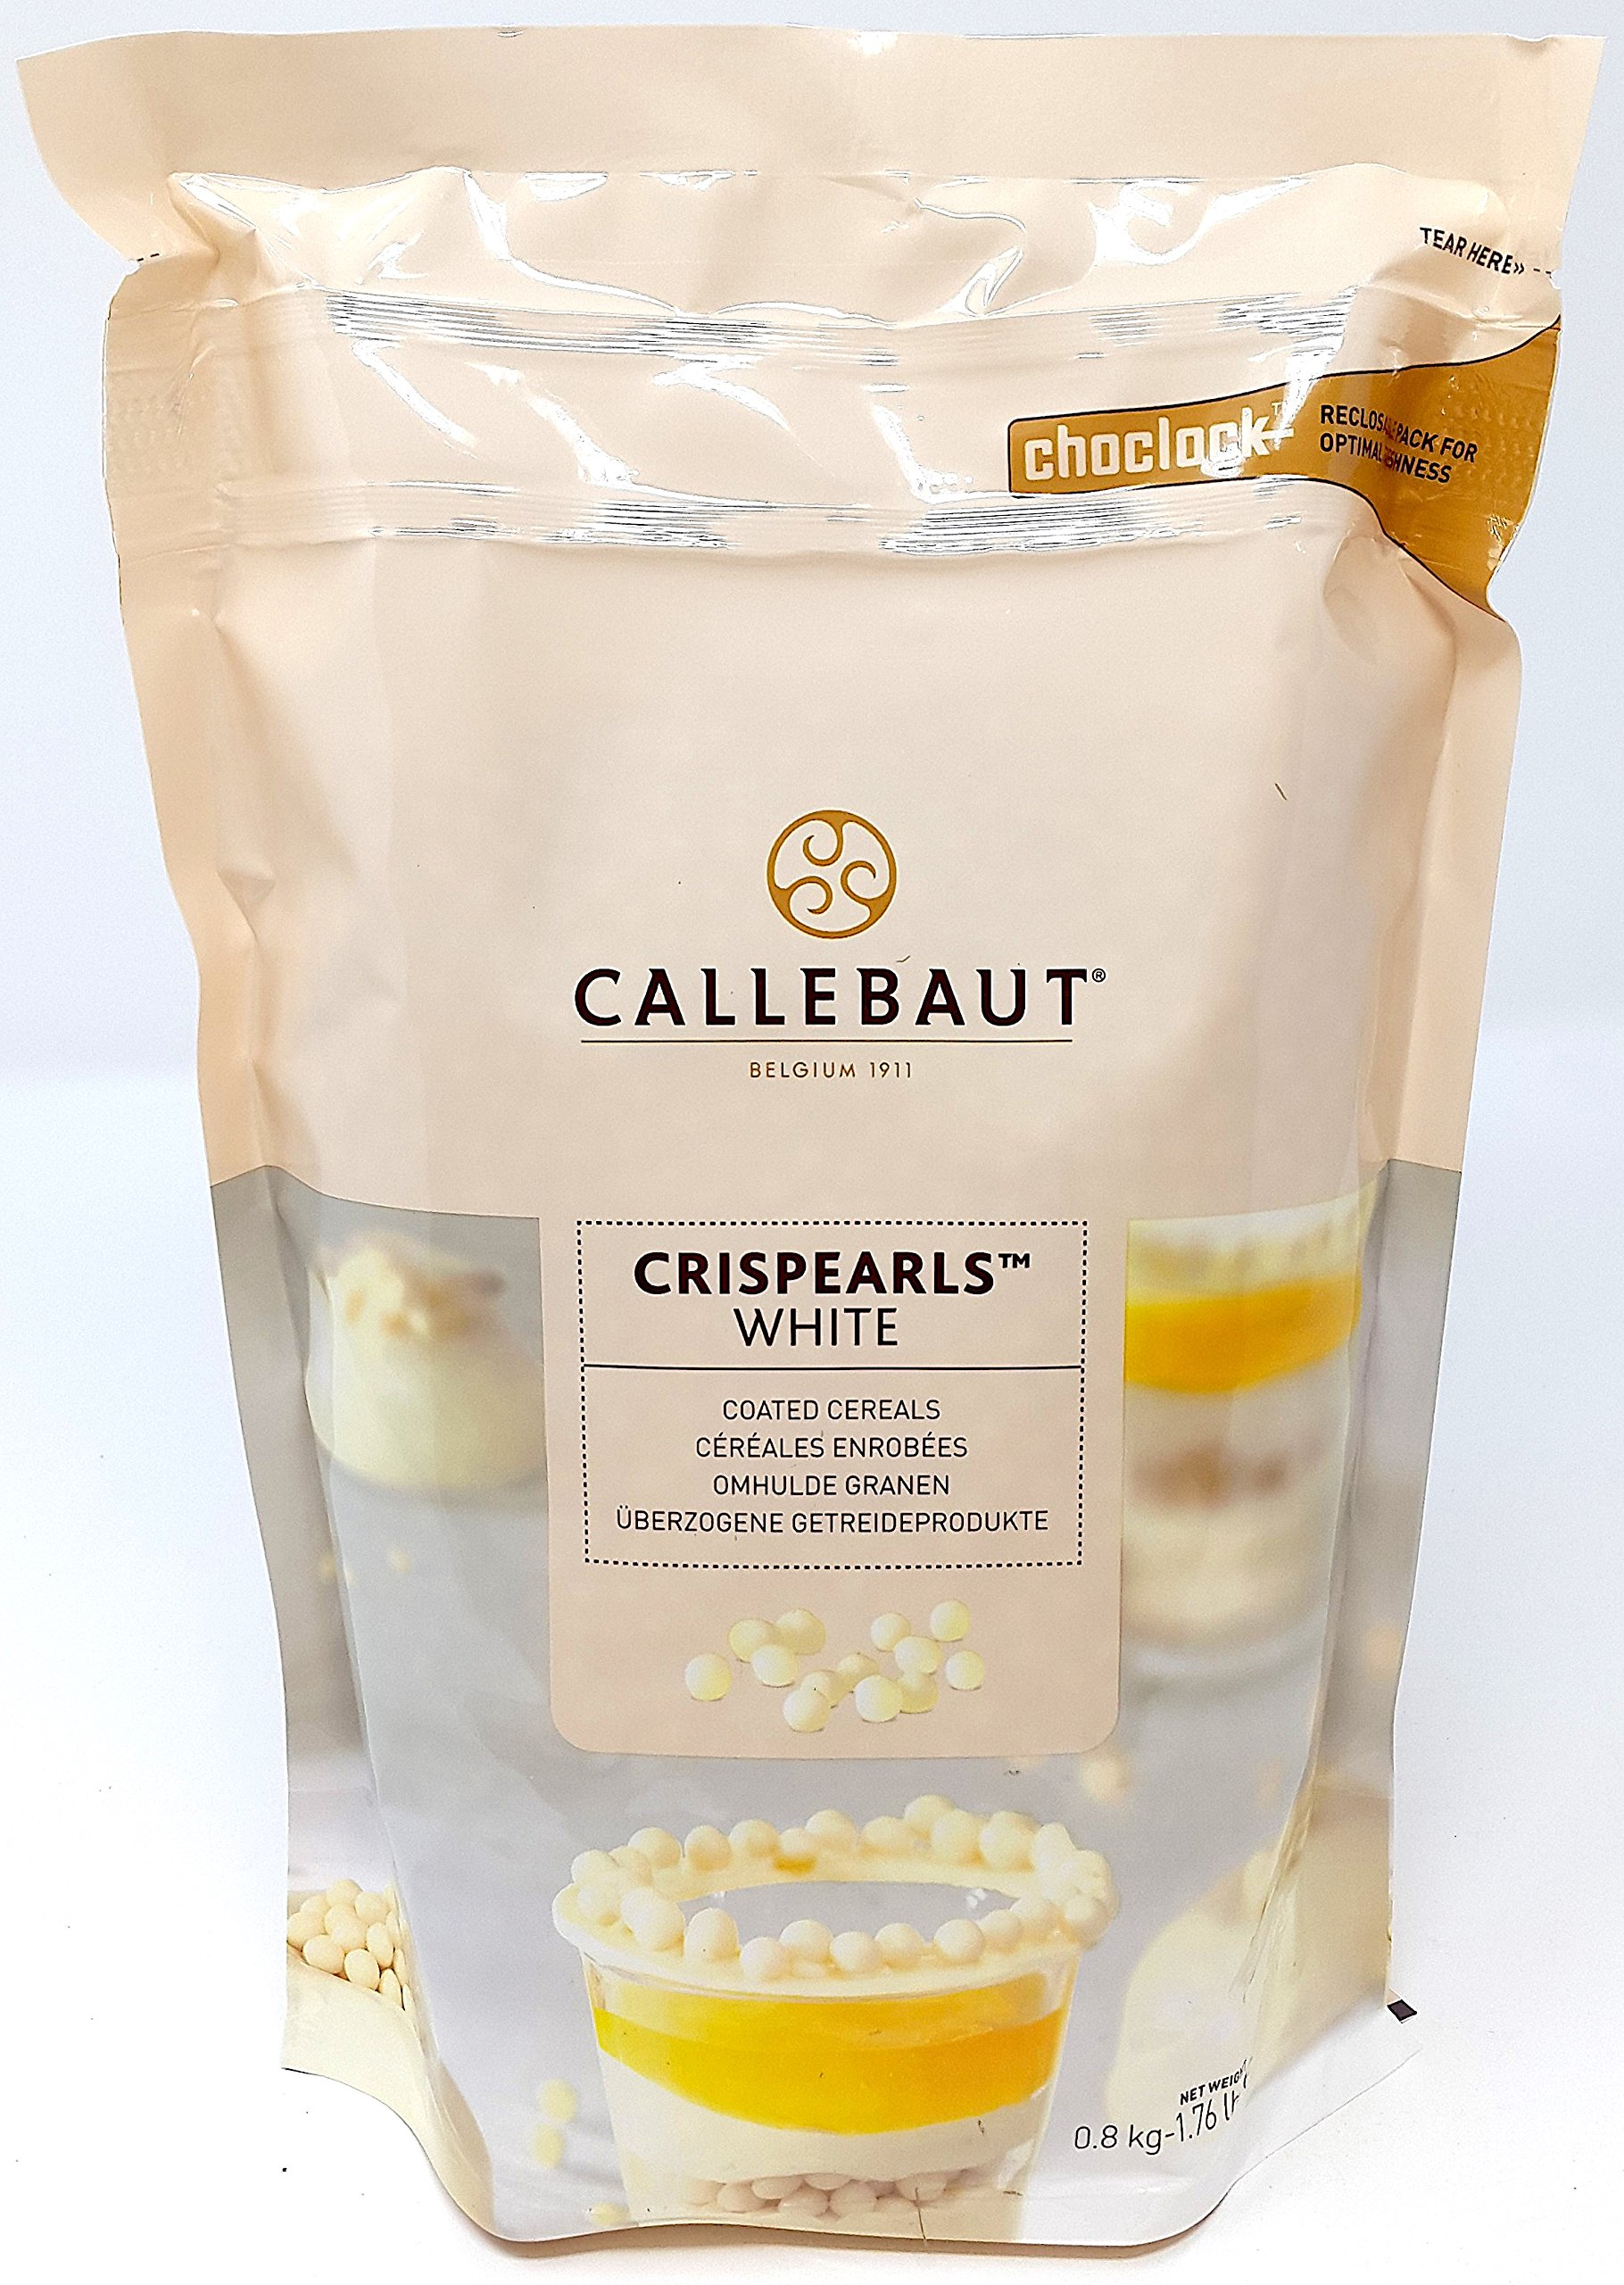 Callebaut White Chocolate Crispearls - Toasted Biscuit Pearls Coated in White Chocolate 800g